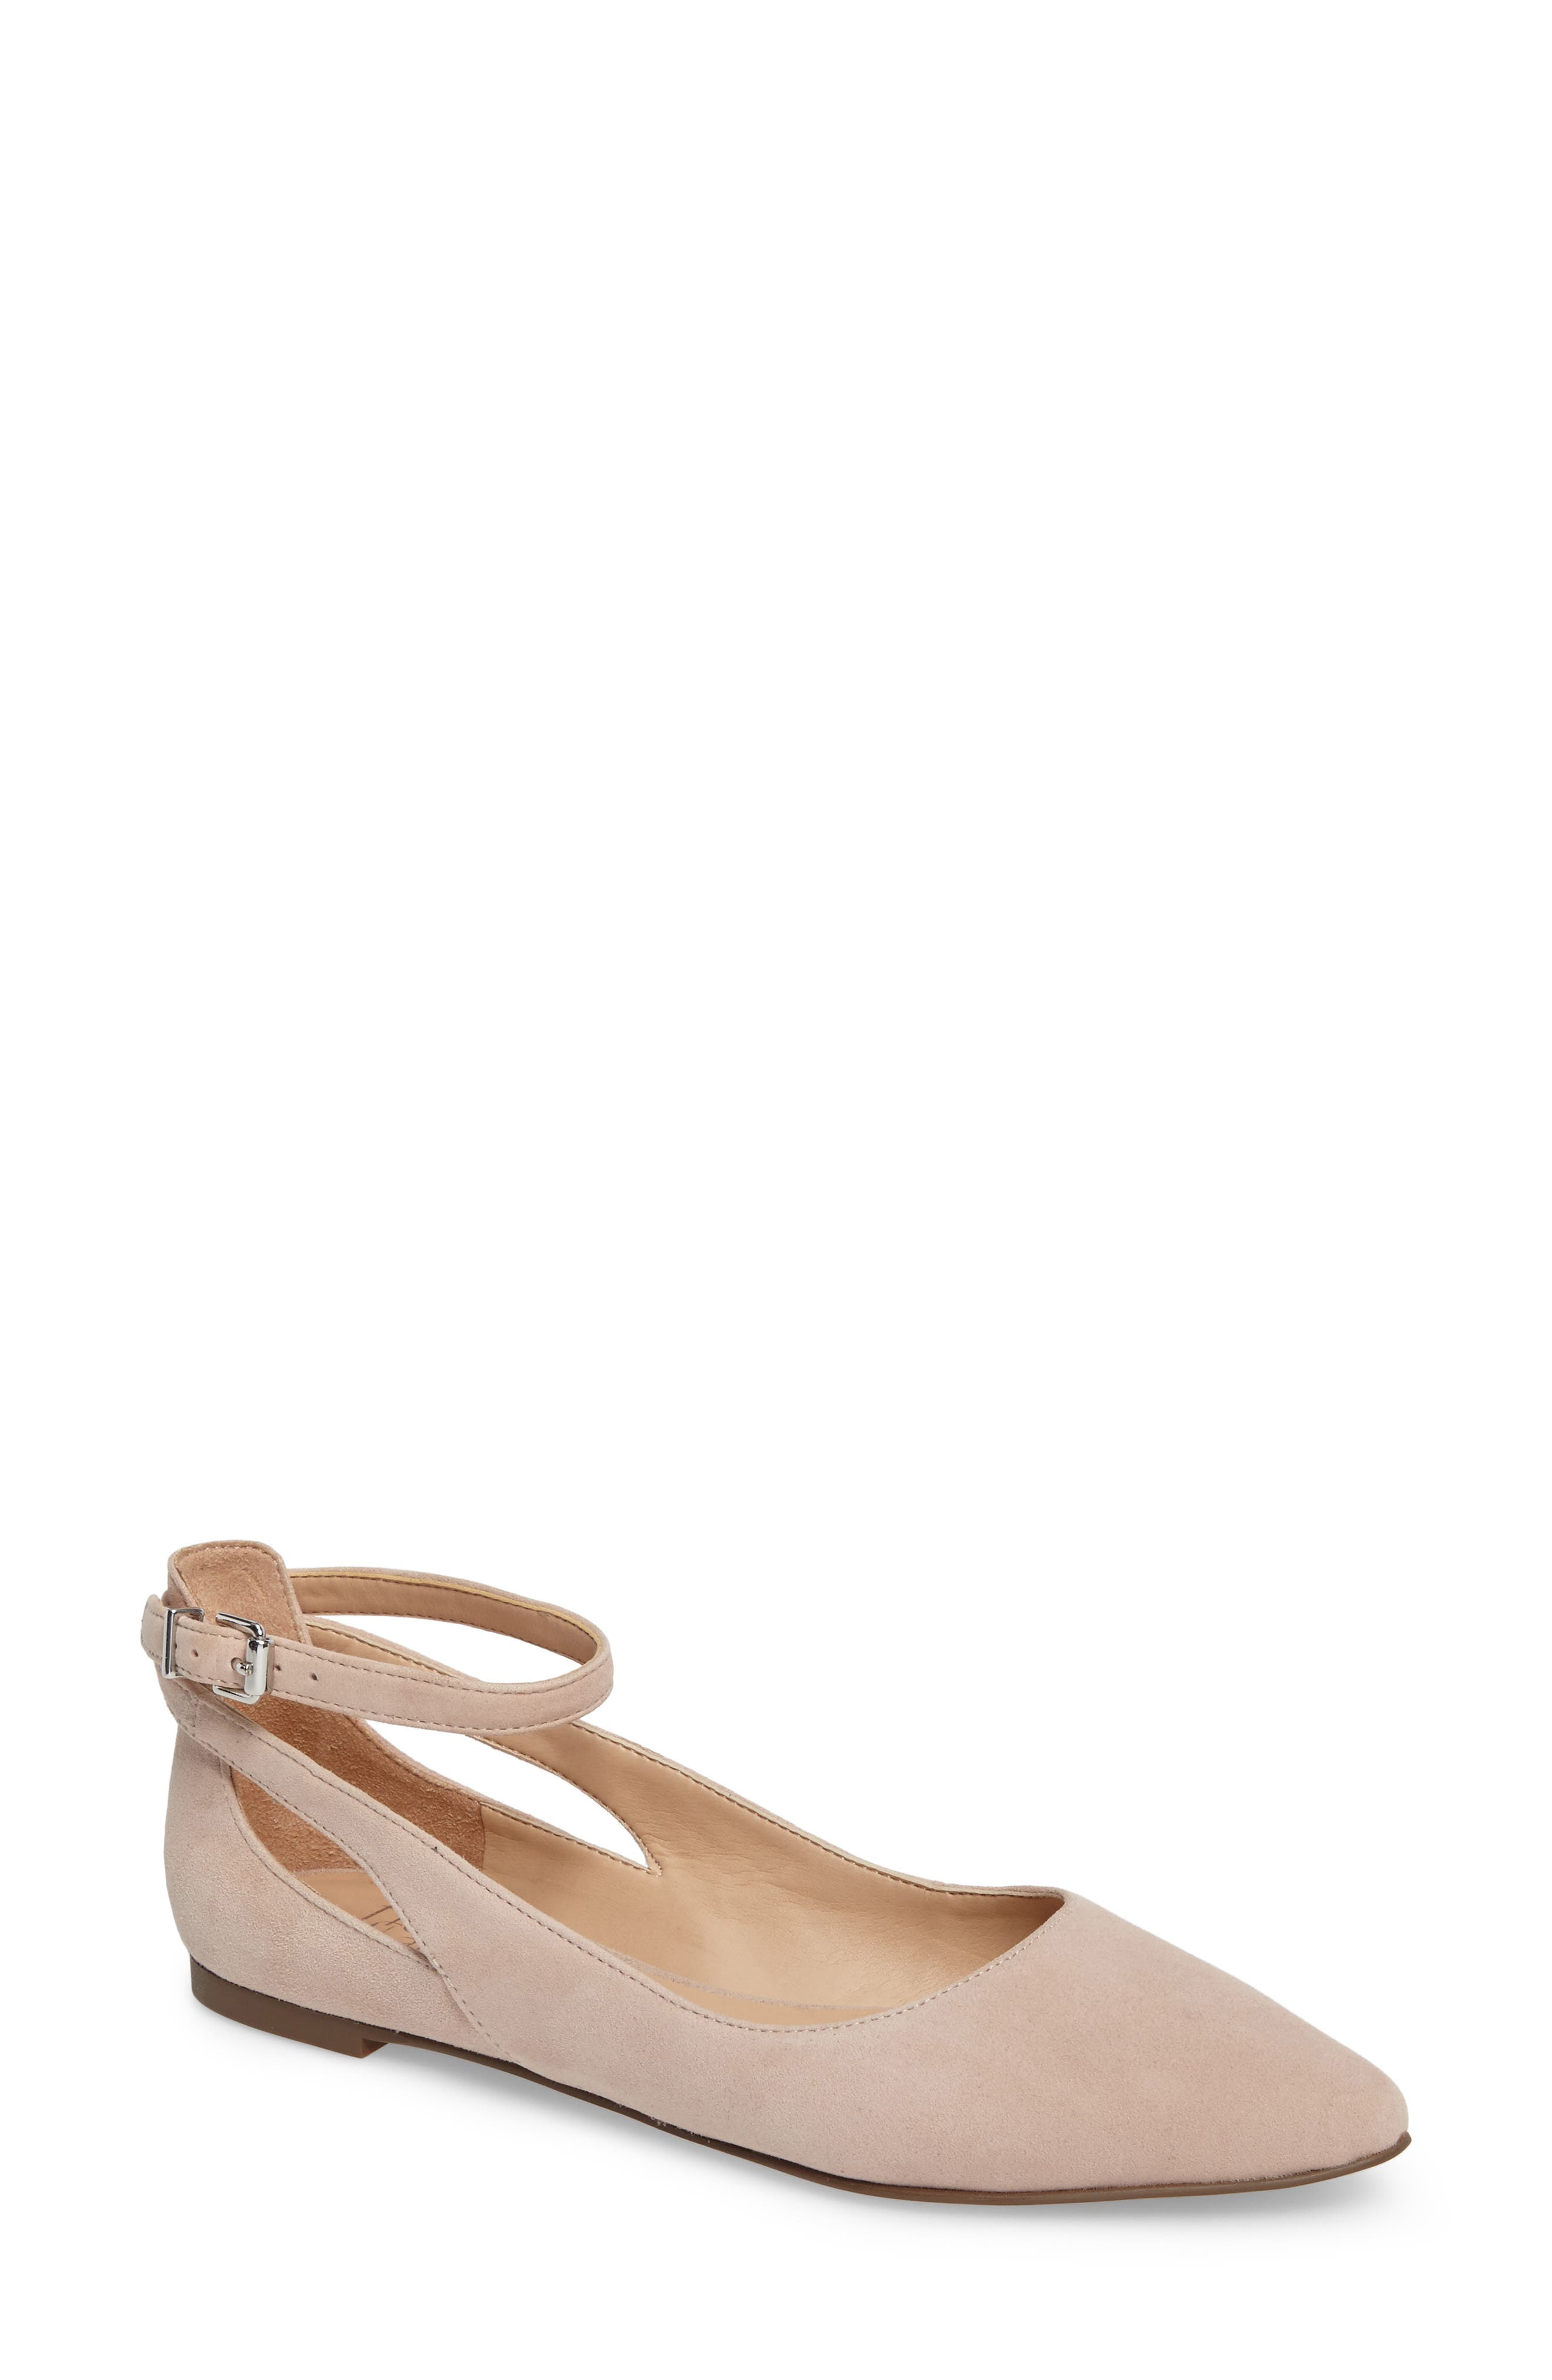 Sylvia Ankle Strap Flat,                             Main thumbnail 1, color,                             Victorian Rose Suede